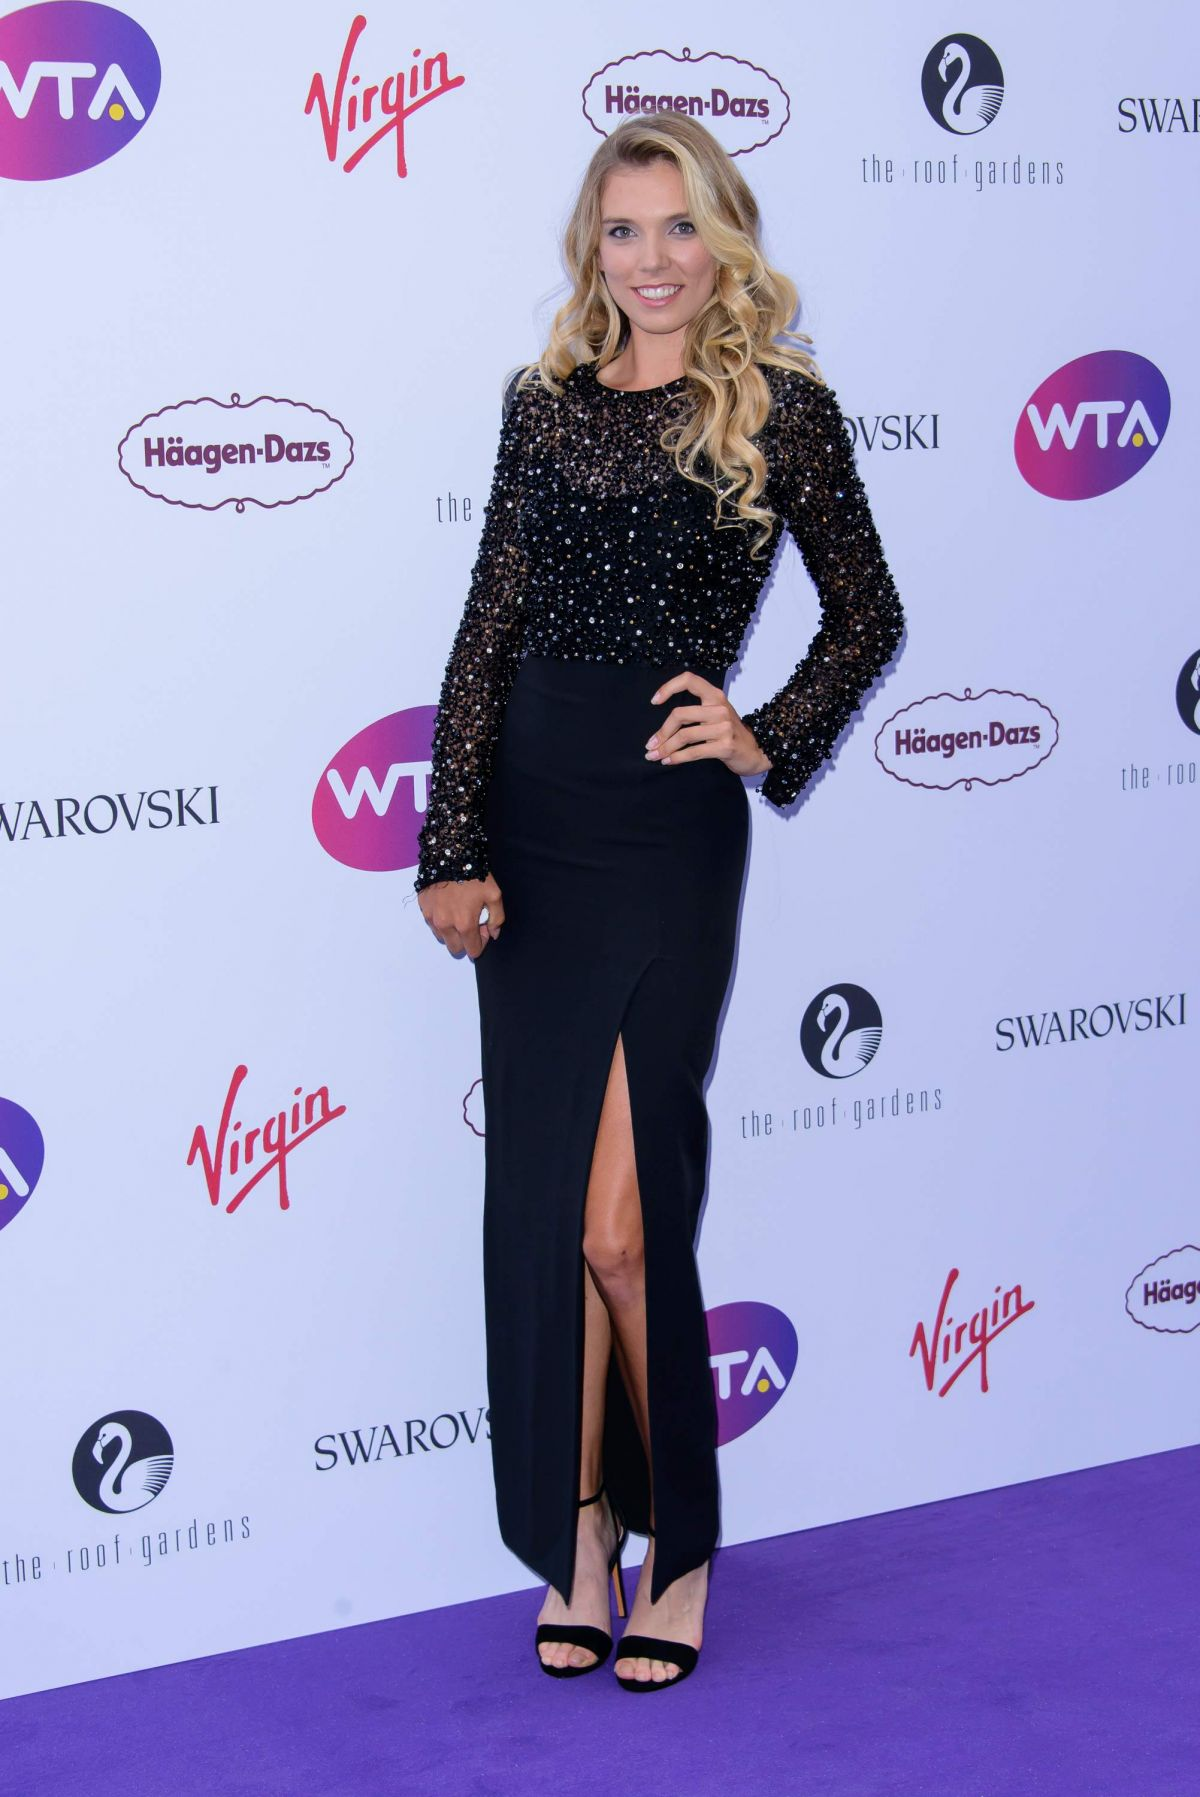 Katie Boulter At WTA Pre-Wimbledon Party - Celebzz - Celebzz